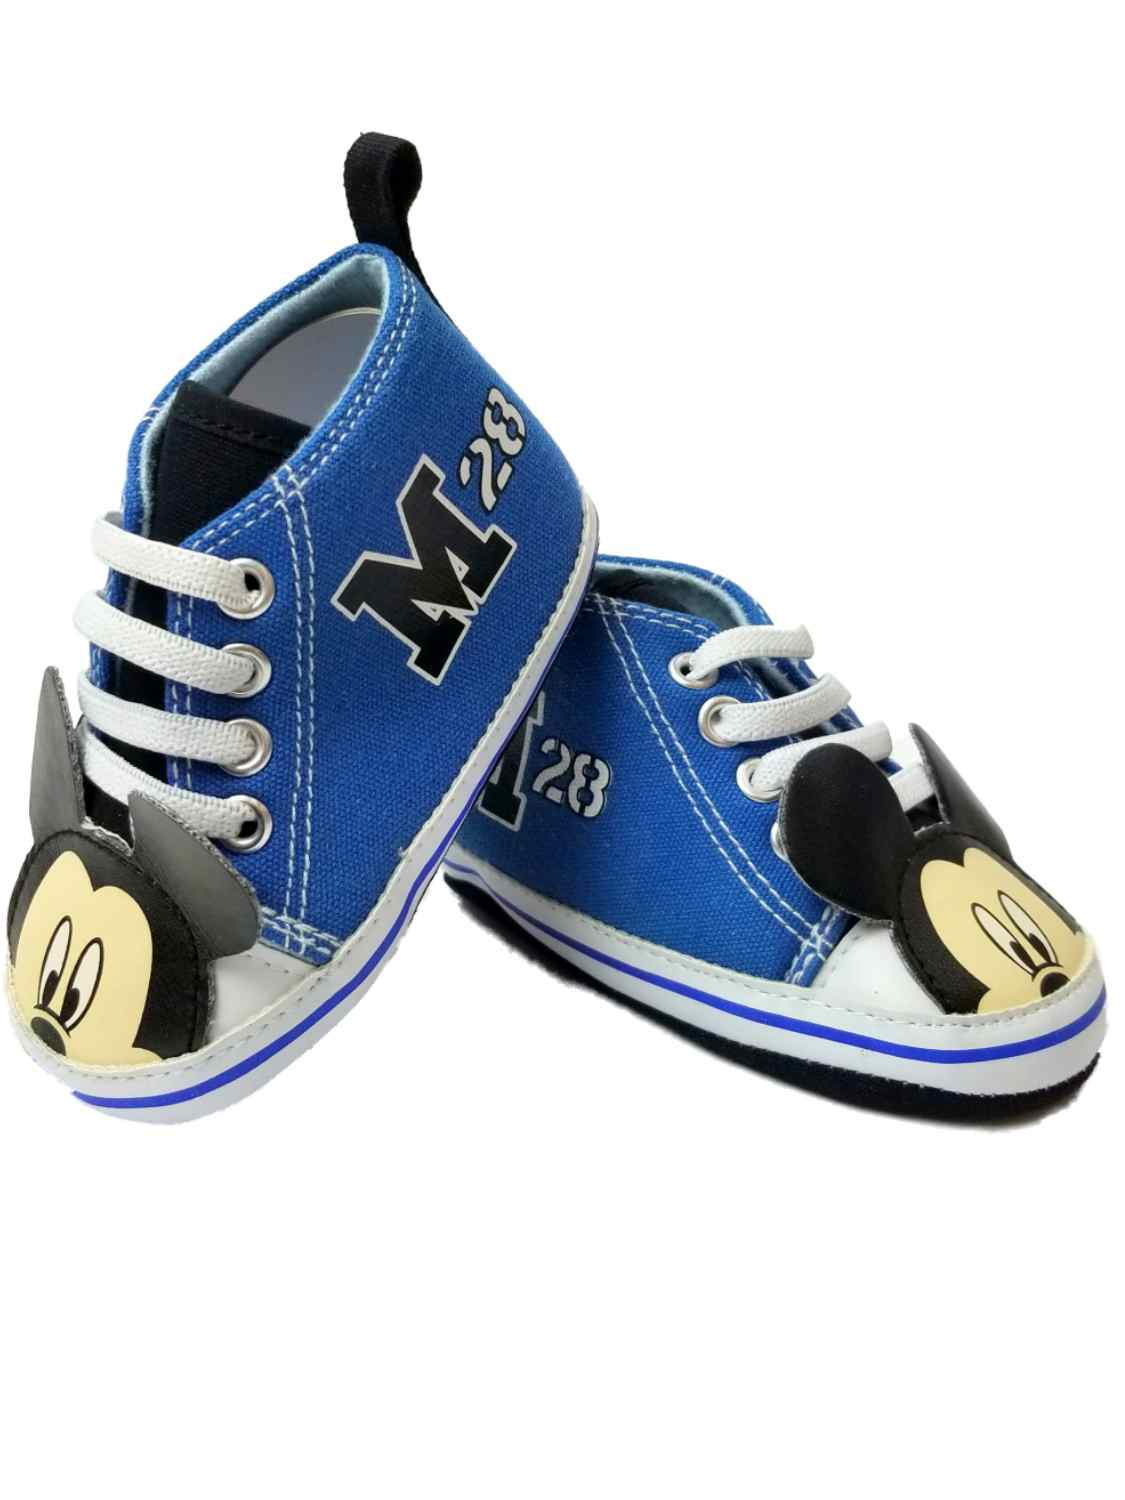 Disney Infant Boys Blue High Top Mickey Mouse Slippers Baby Crib Shoes